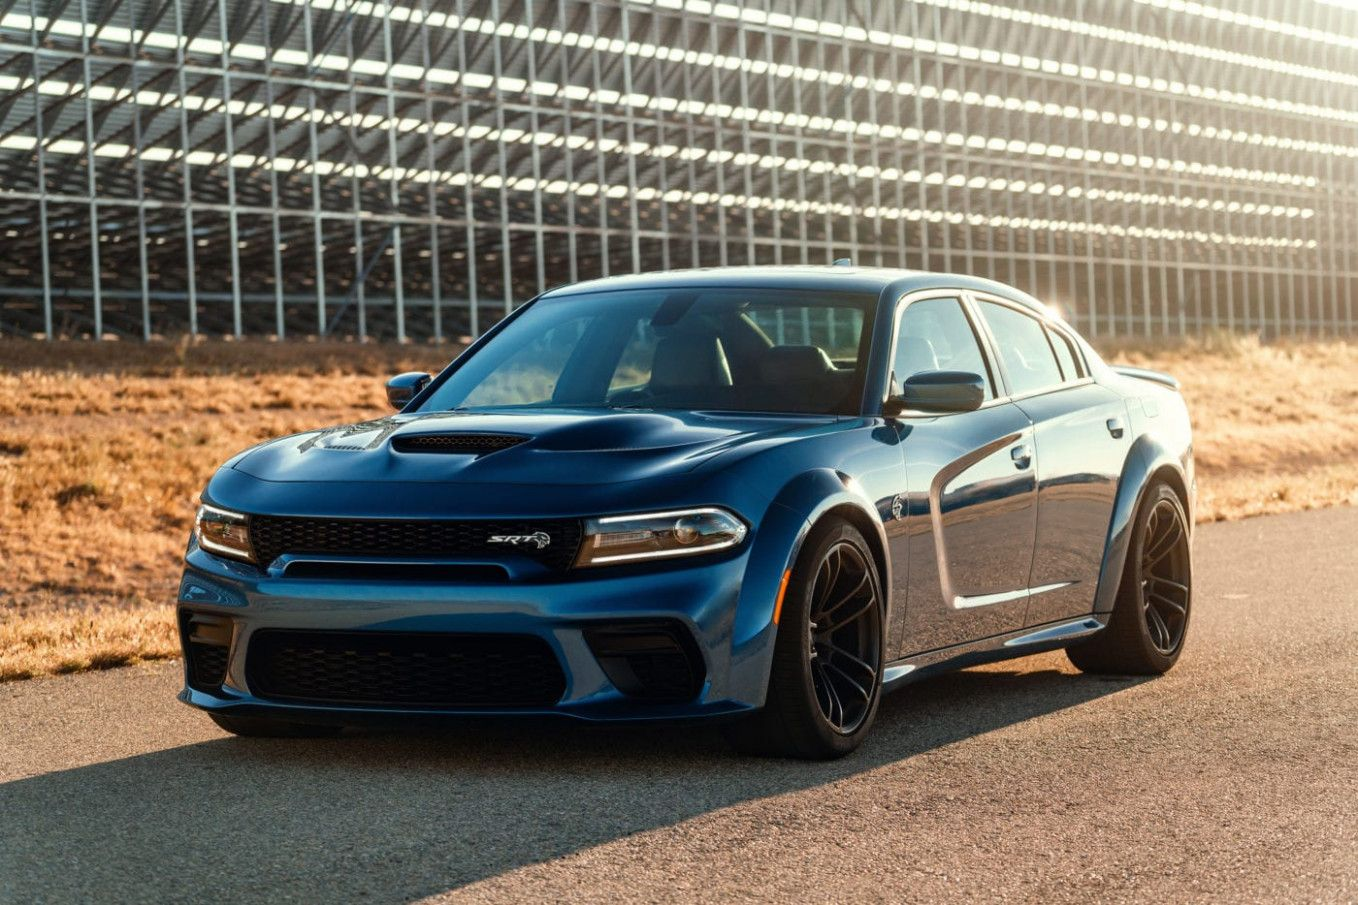 2020 Dodge Hellcat Price Picture 2020 Car Reviews